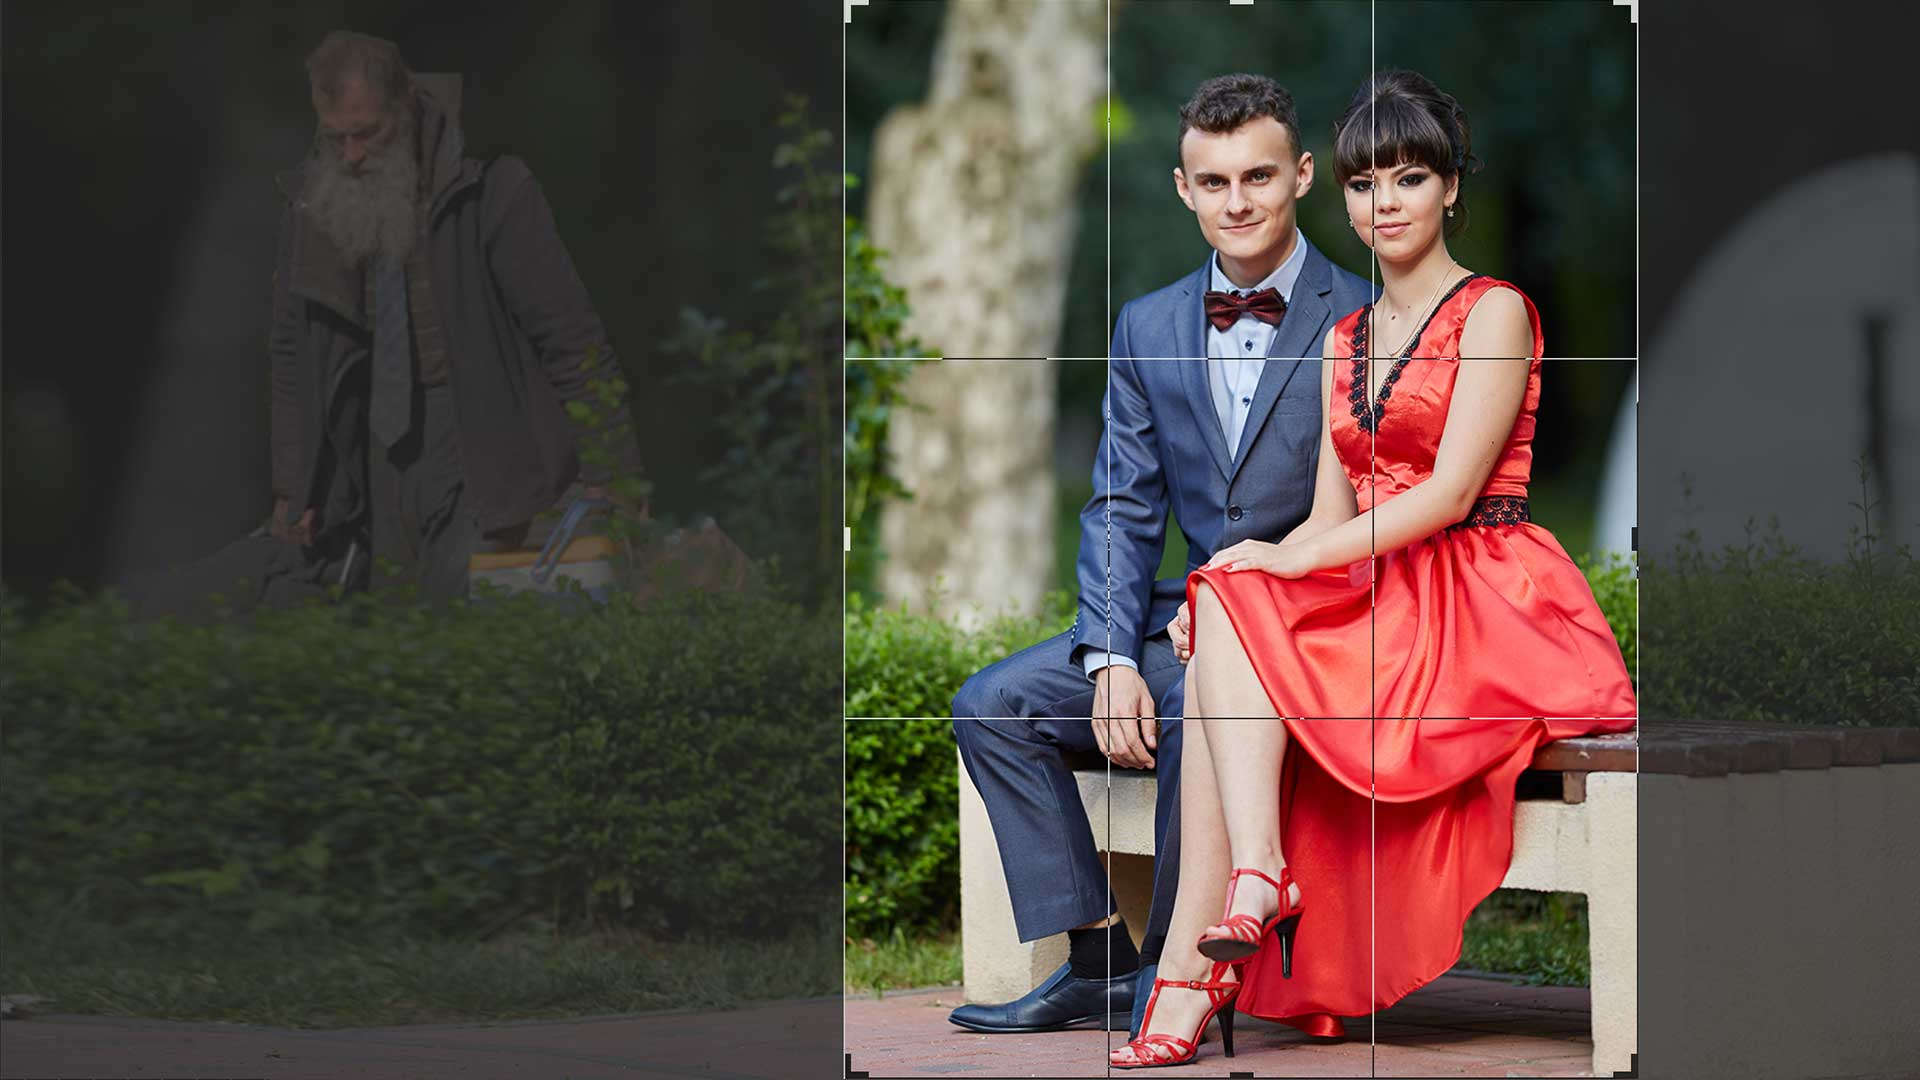 Loring-Park-Prom-Photo-Shoot-Strategically-Crops-out-Homeless-Residents.jpg